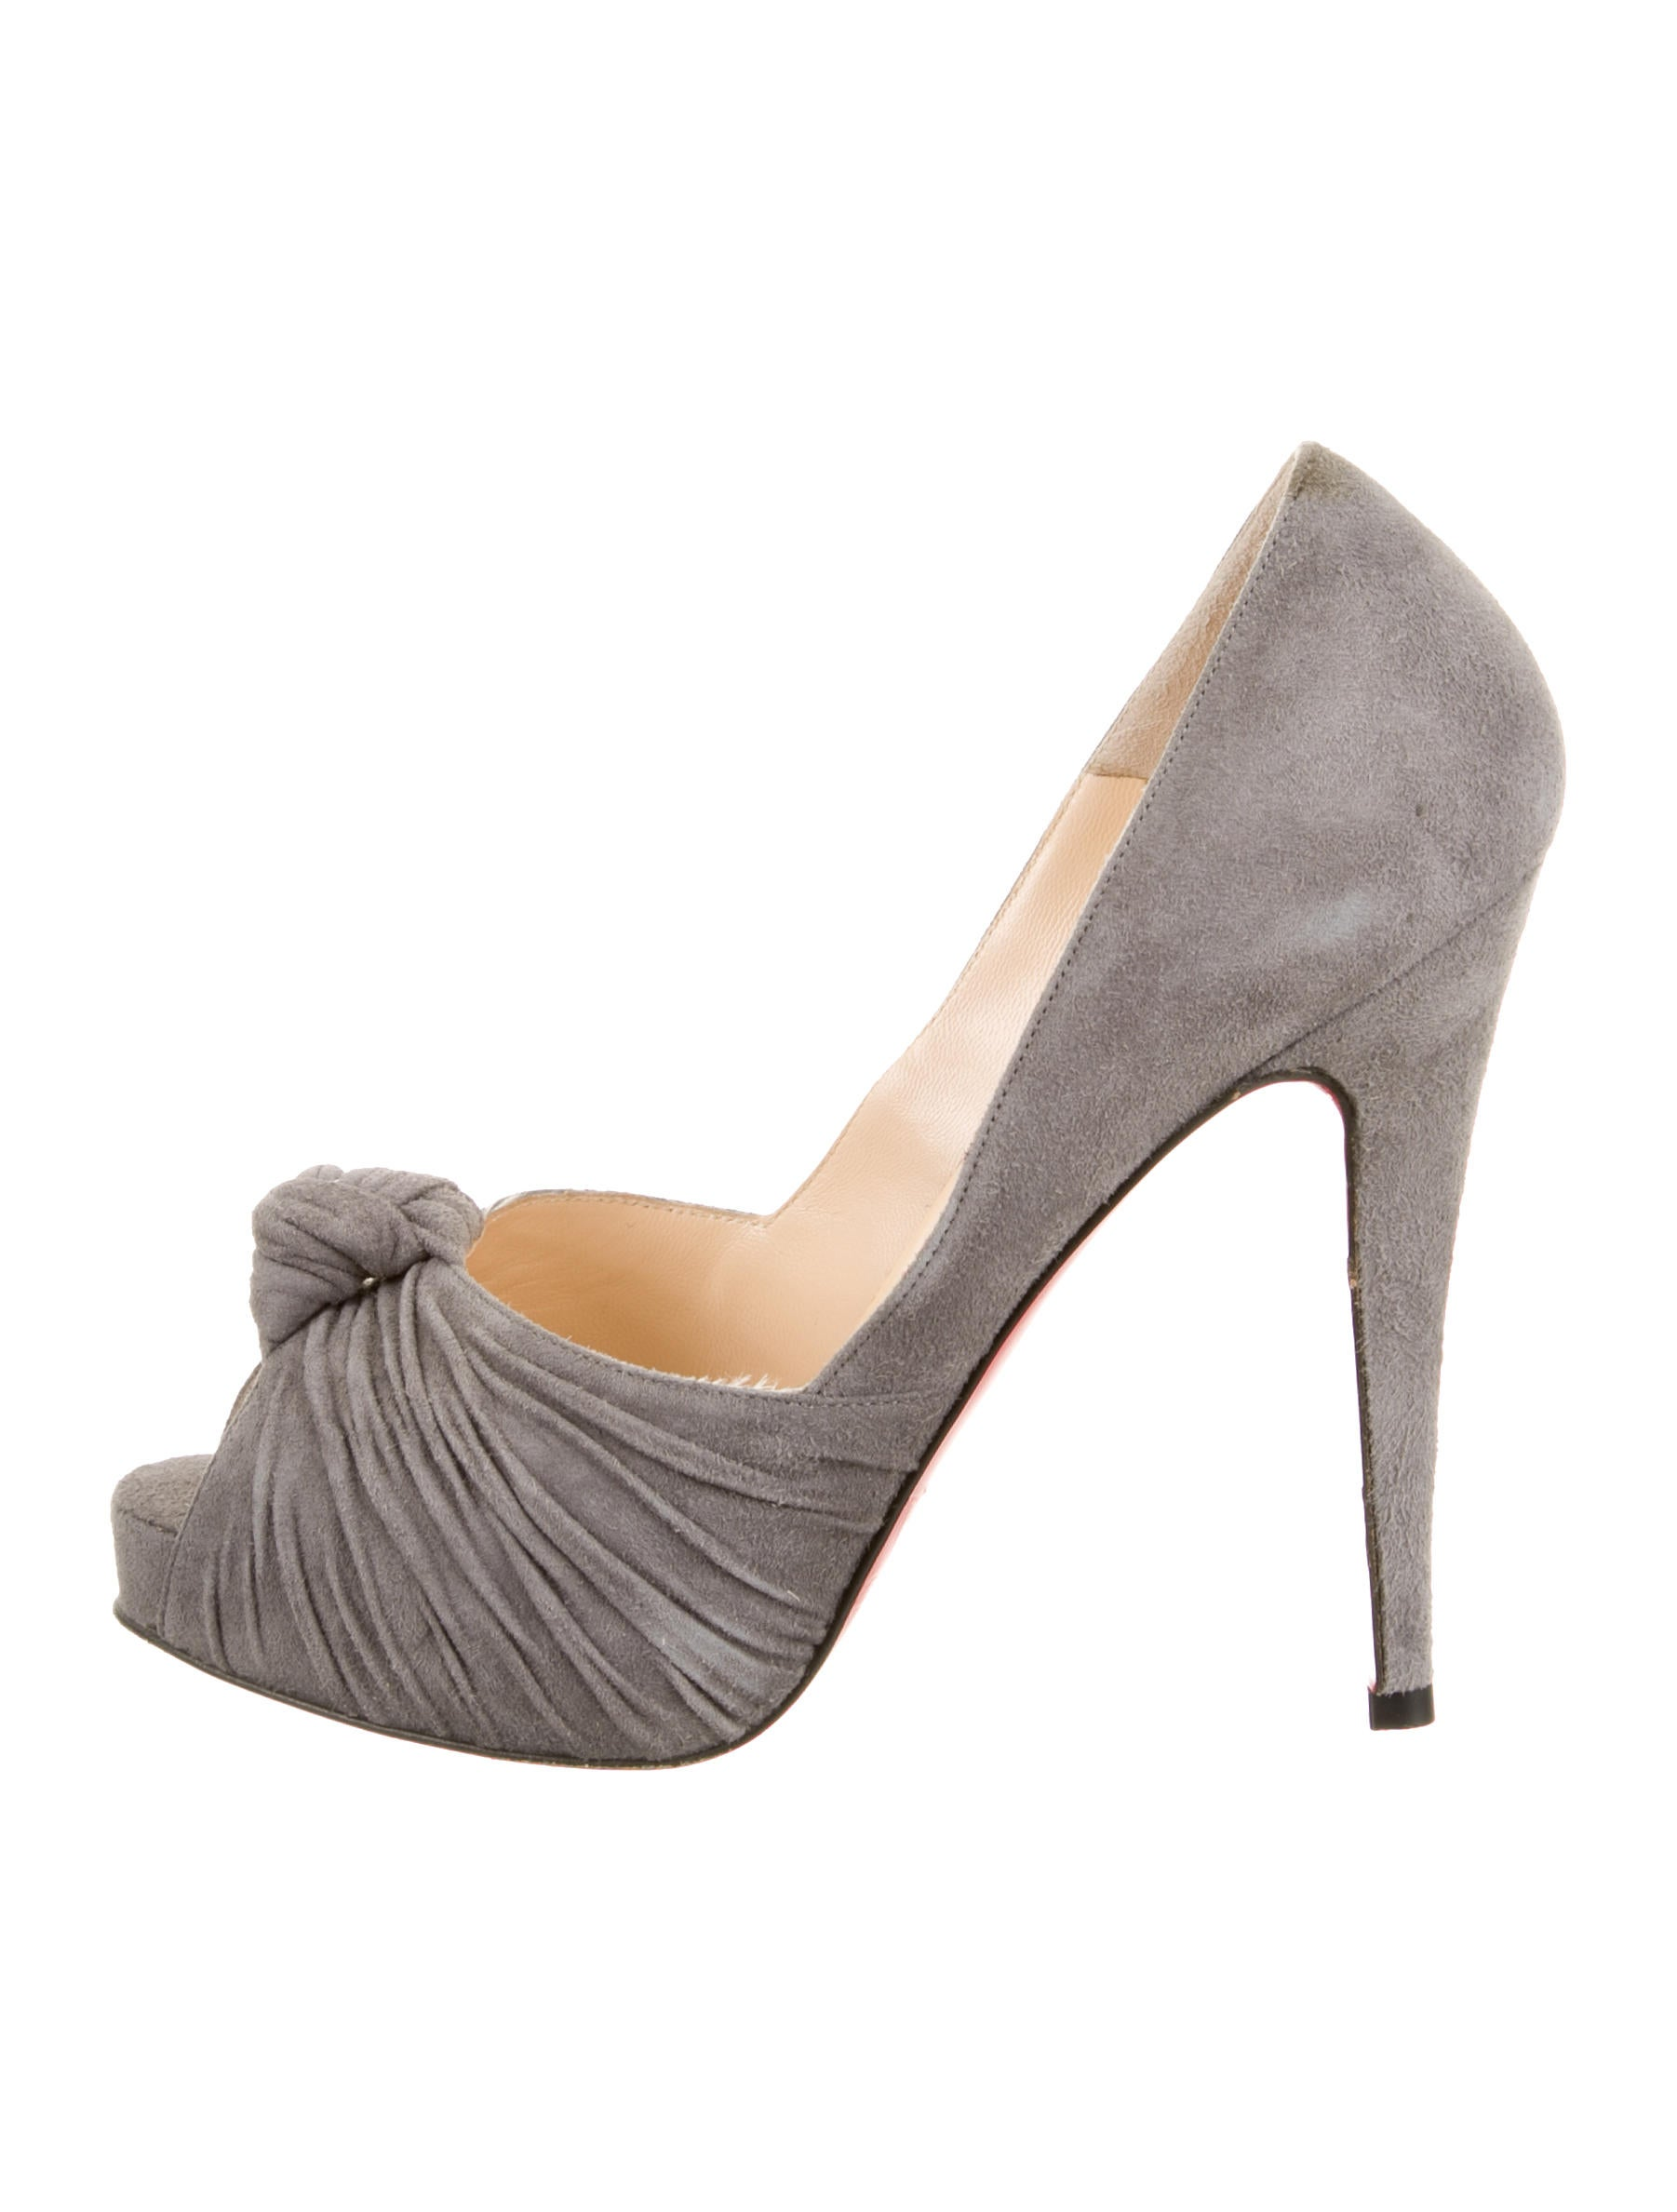 49aa7fe2fd ... purchase christian louboutin peep toe pumps grey suede knot accent  80448 592c8